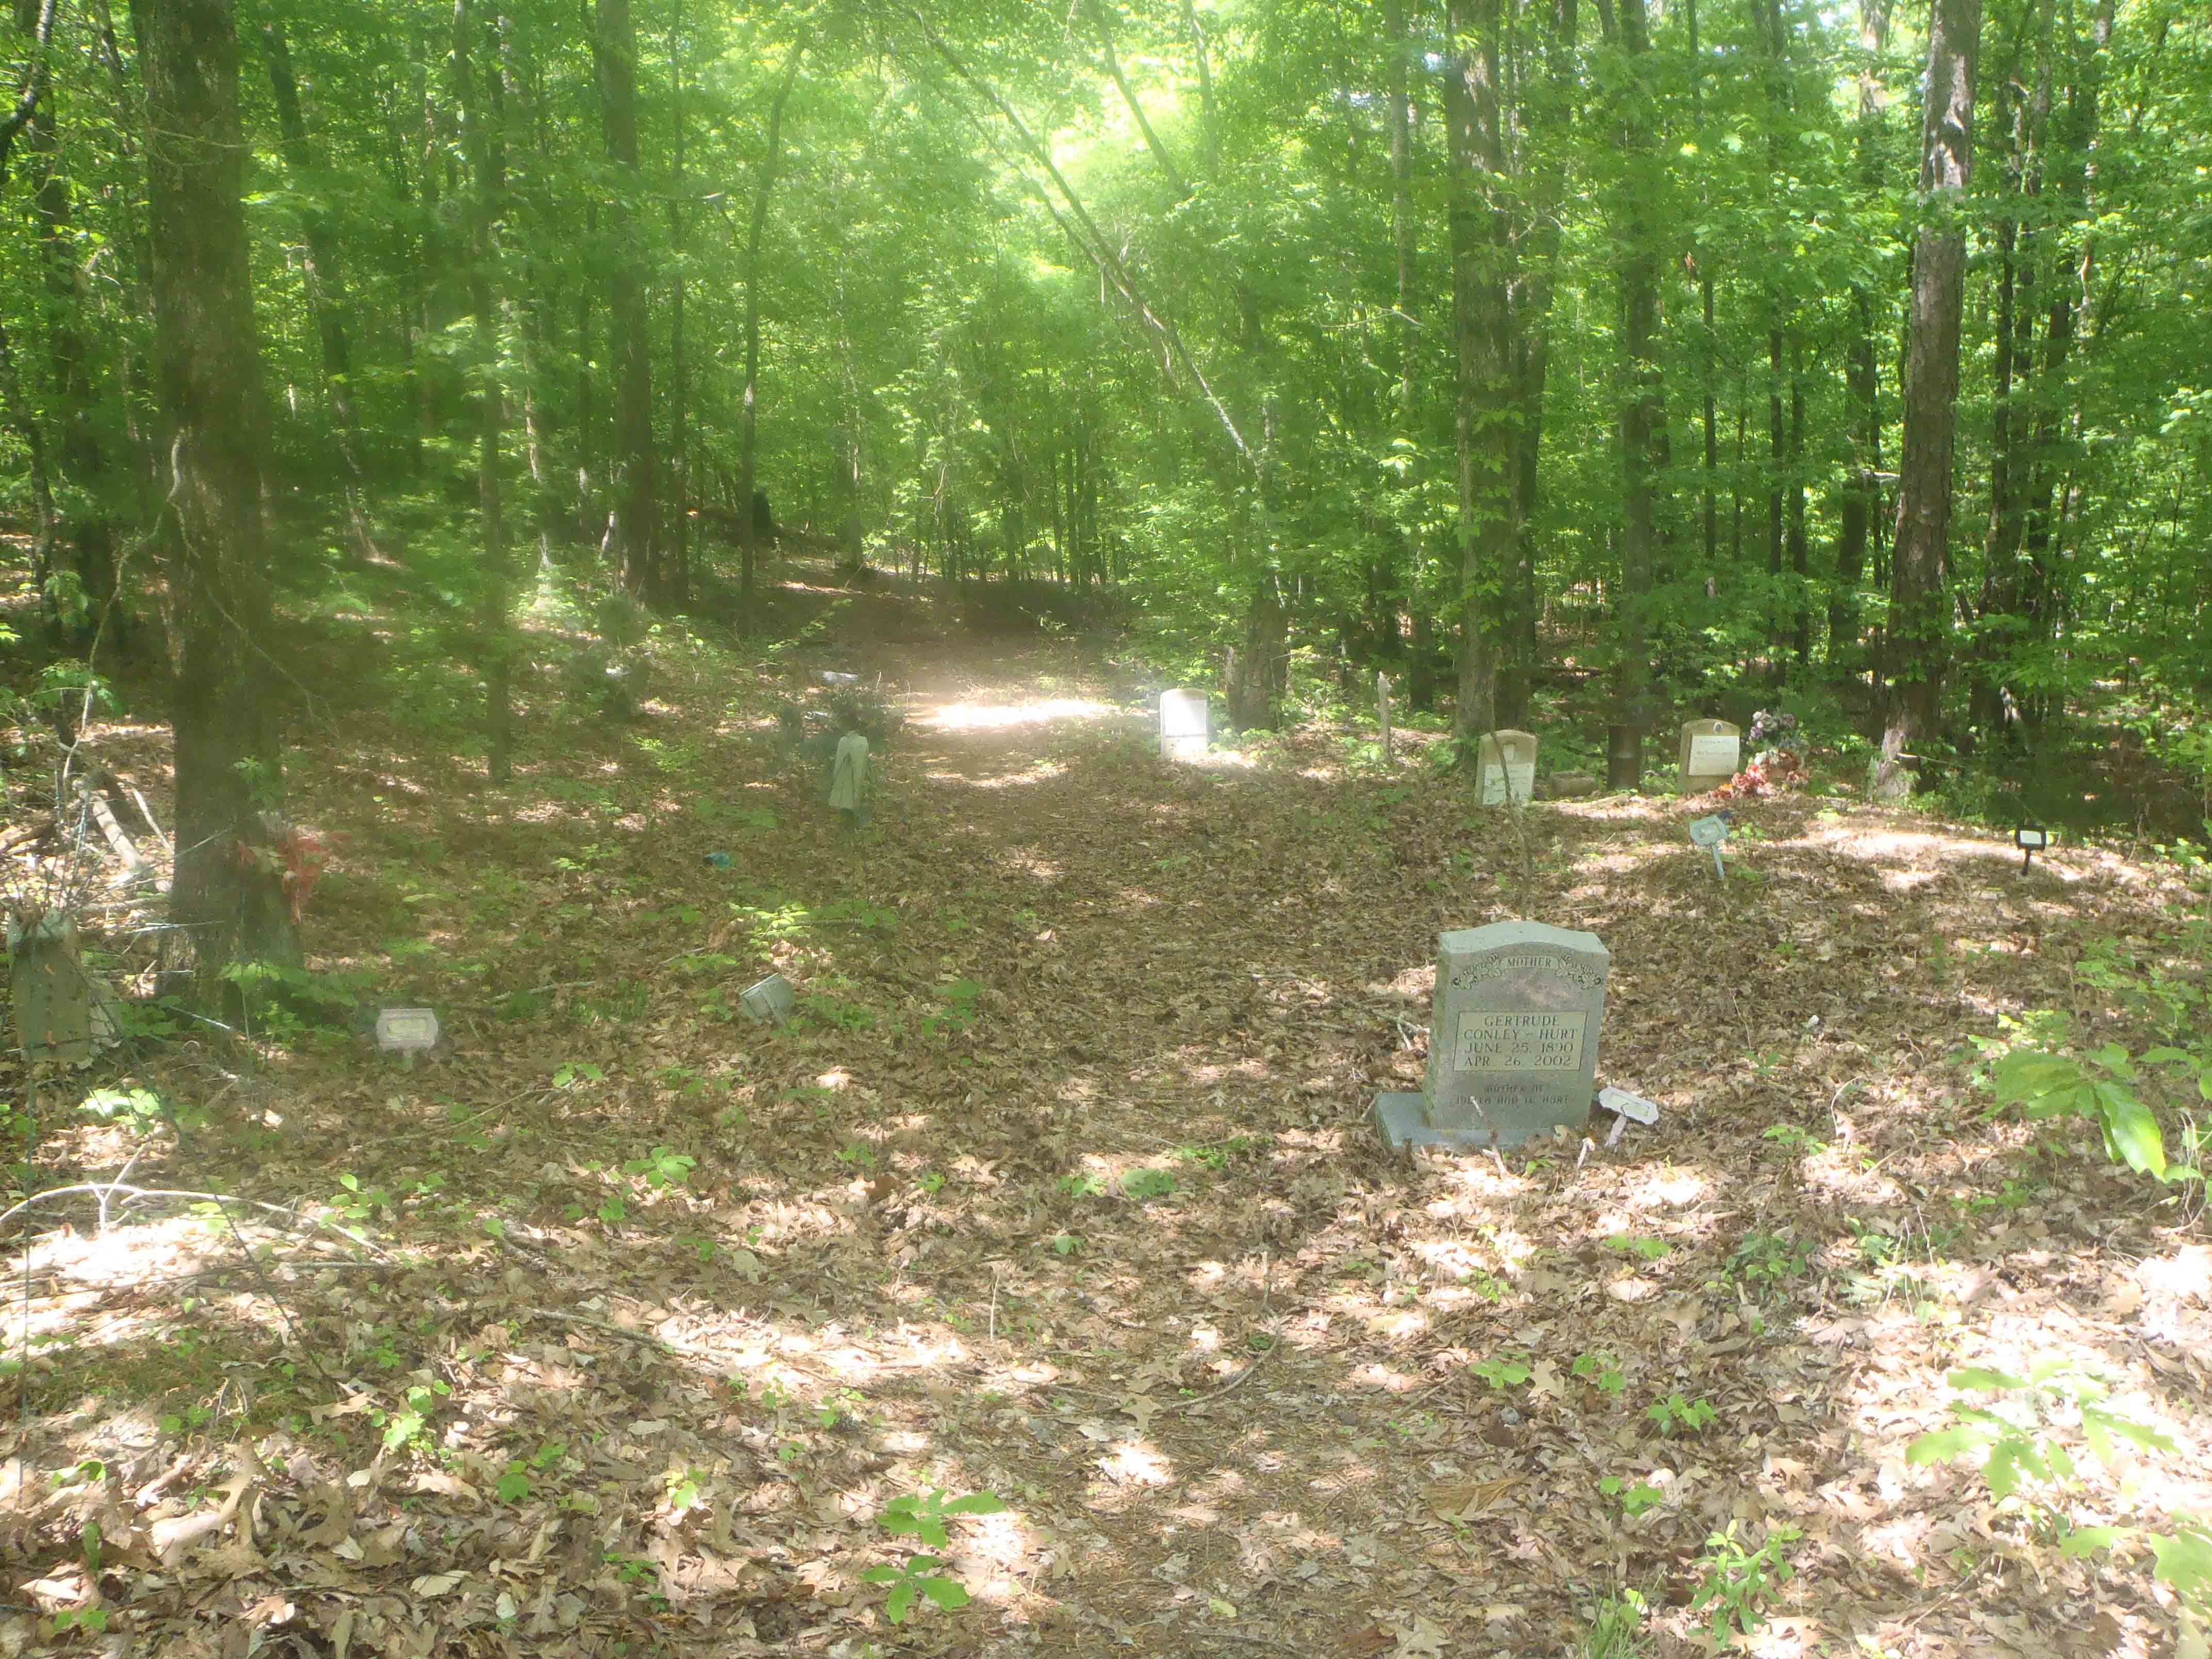 Cemetery where Mississippi John Hurt is buried